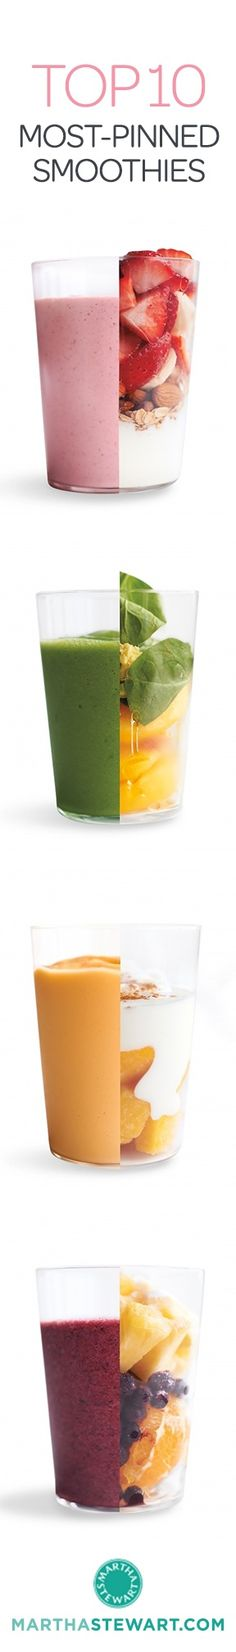 Most-Pinned: Our Top 10 Most-Pinned Smoothie Recipes